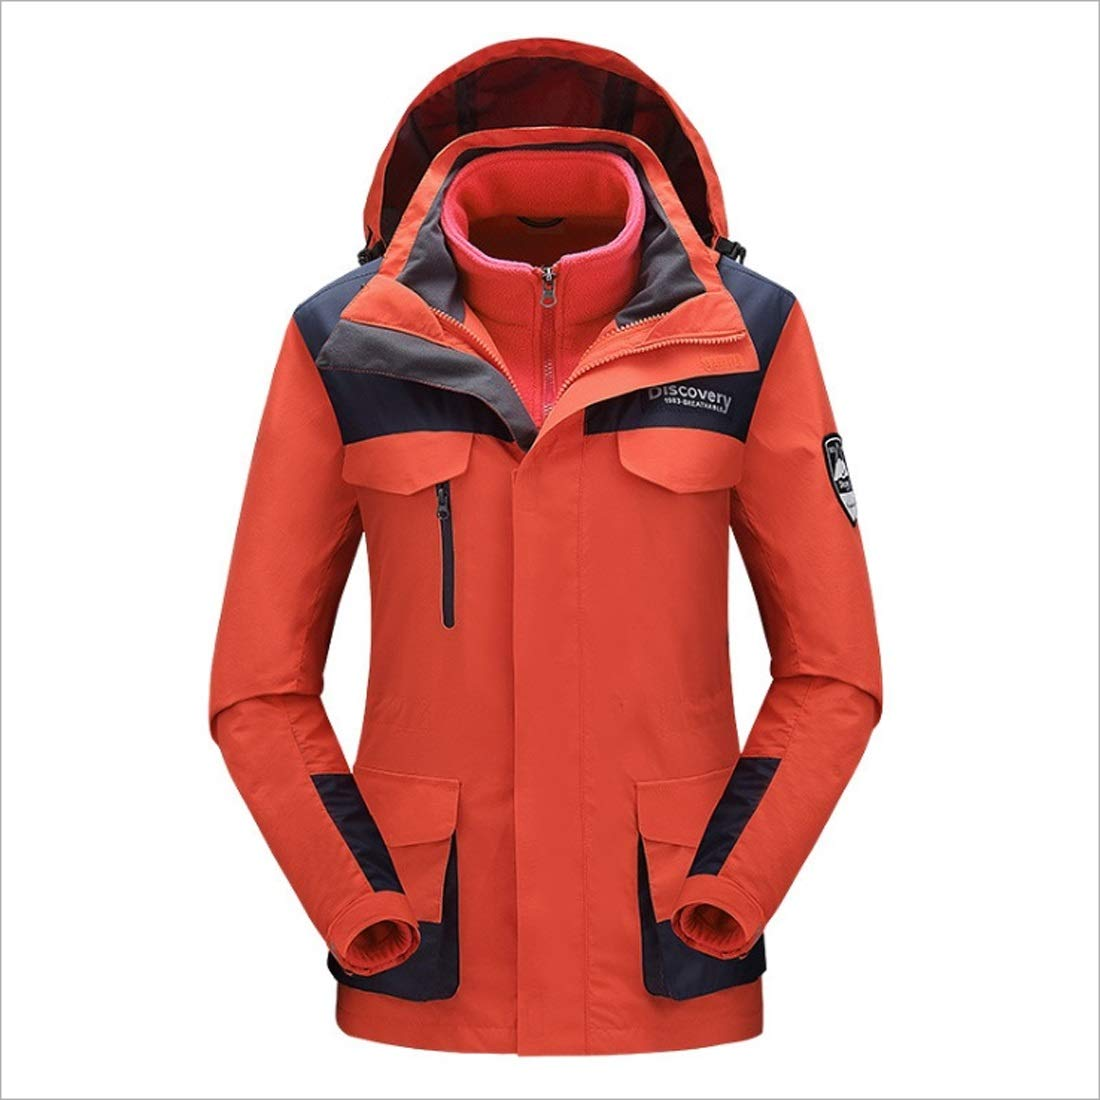 1 AUSWIEI Female Outdoor Jacket Threeinone Autumn and Winter Fashion Warm Mountaineering Suit Waterproof Breathable Slim Jacket (color   01, Size   L)